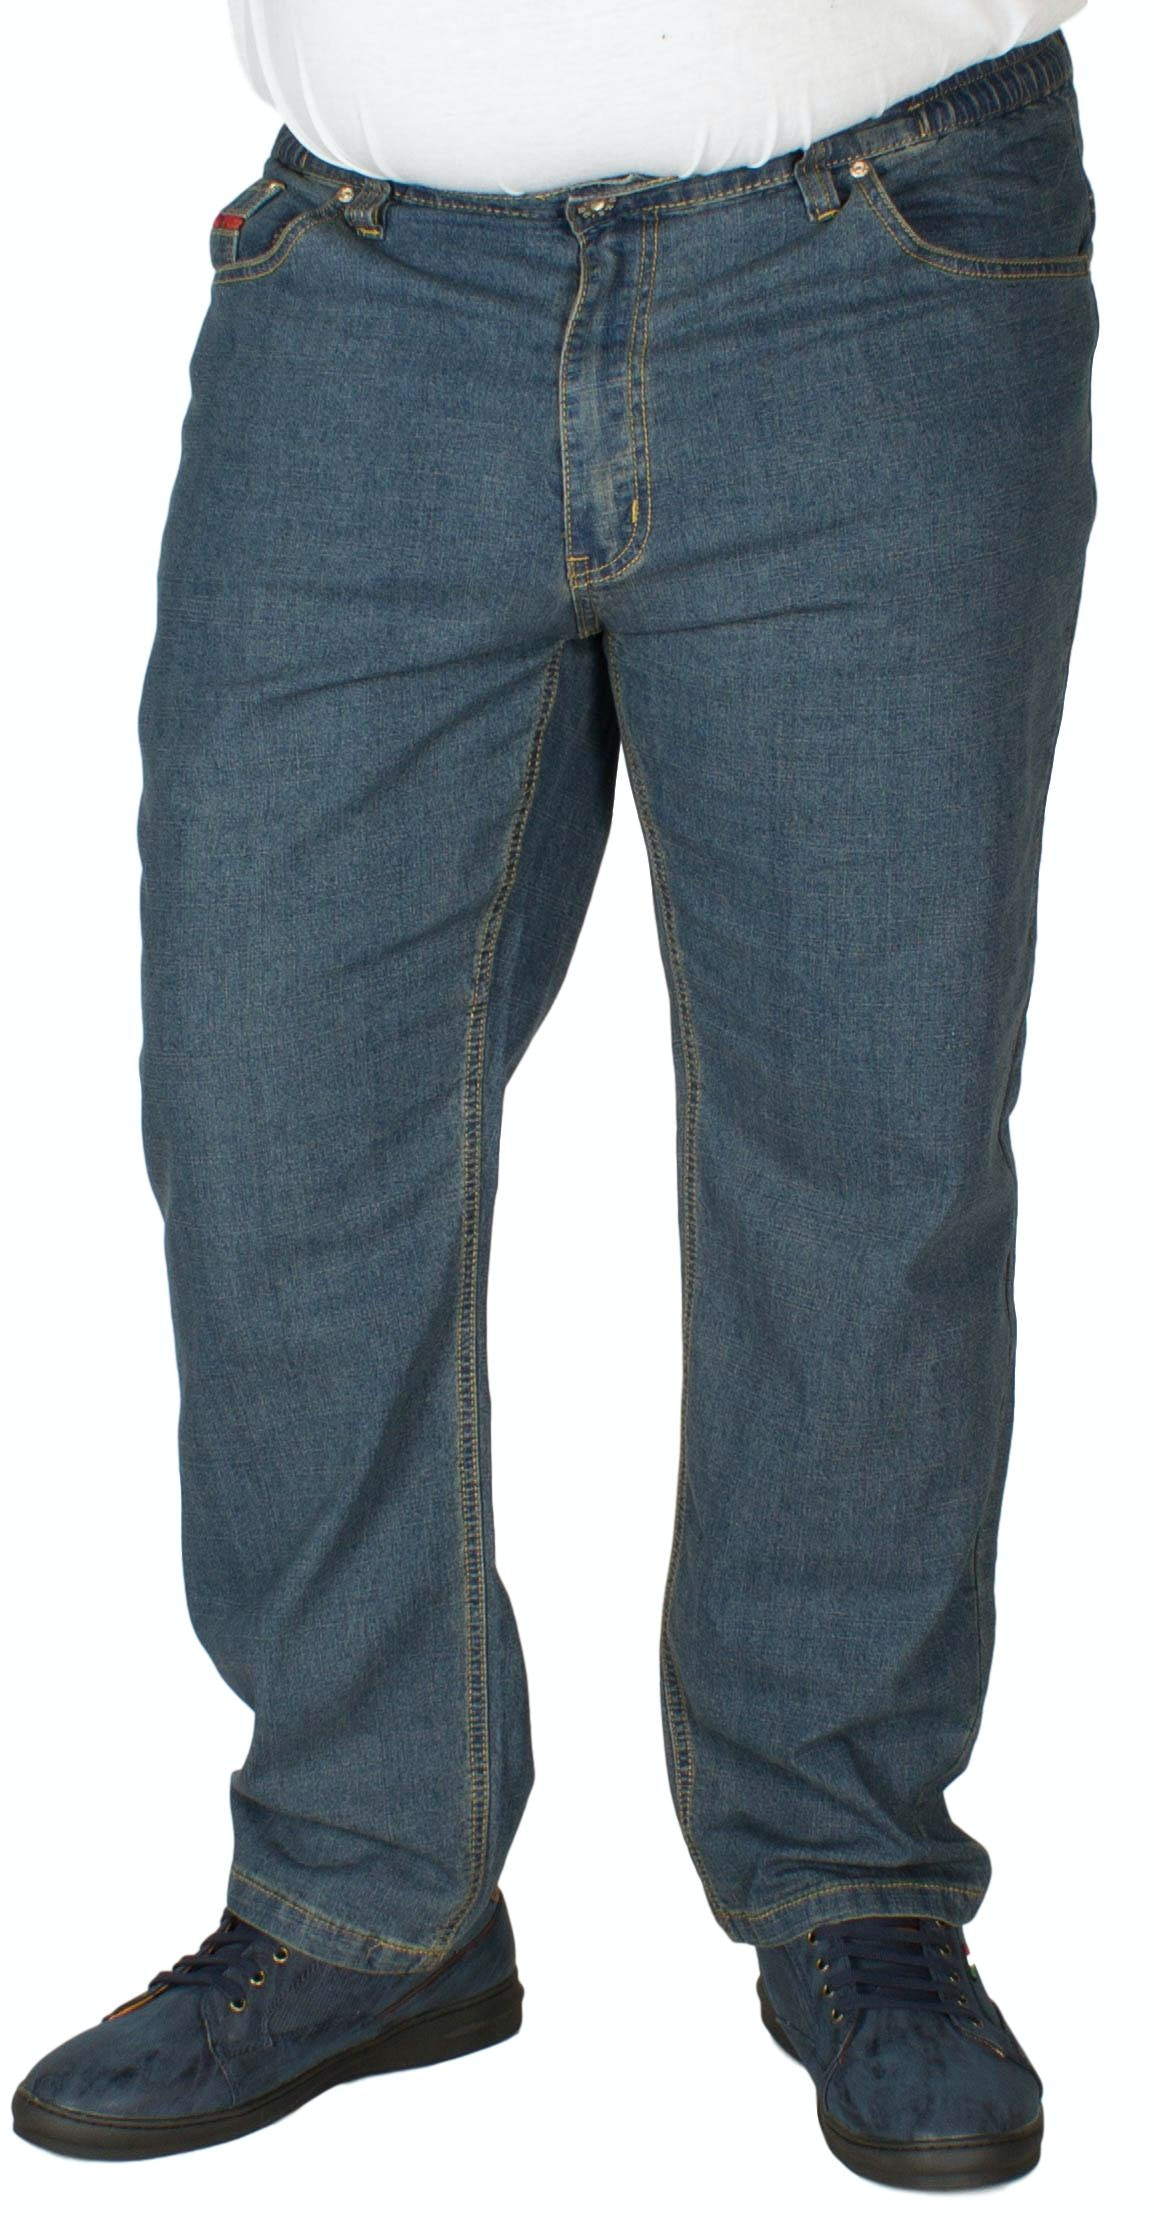 Duke Elasticated Waist Stretch Denim Jeans